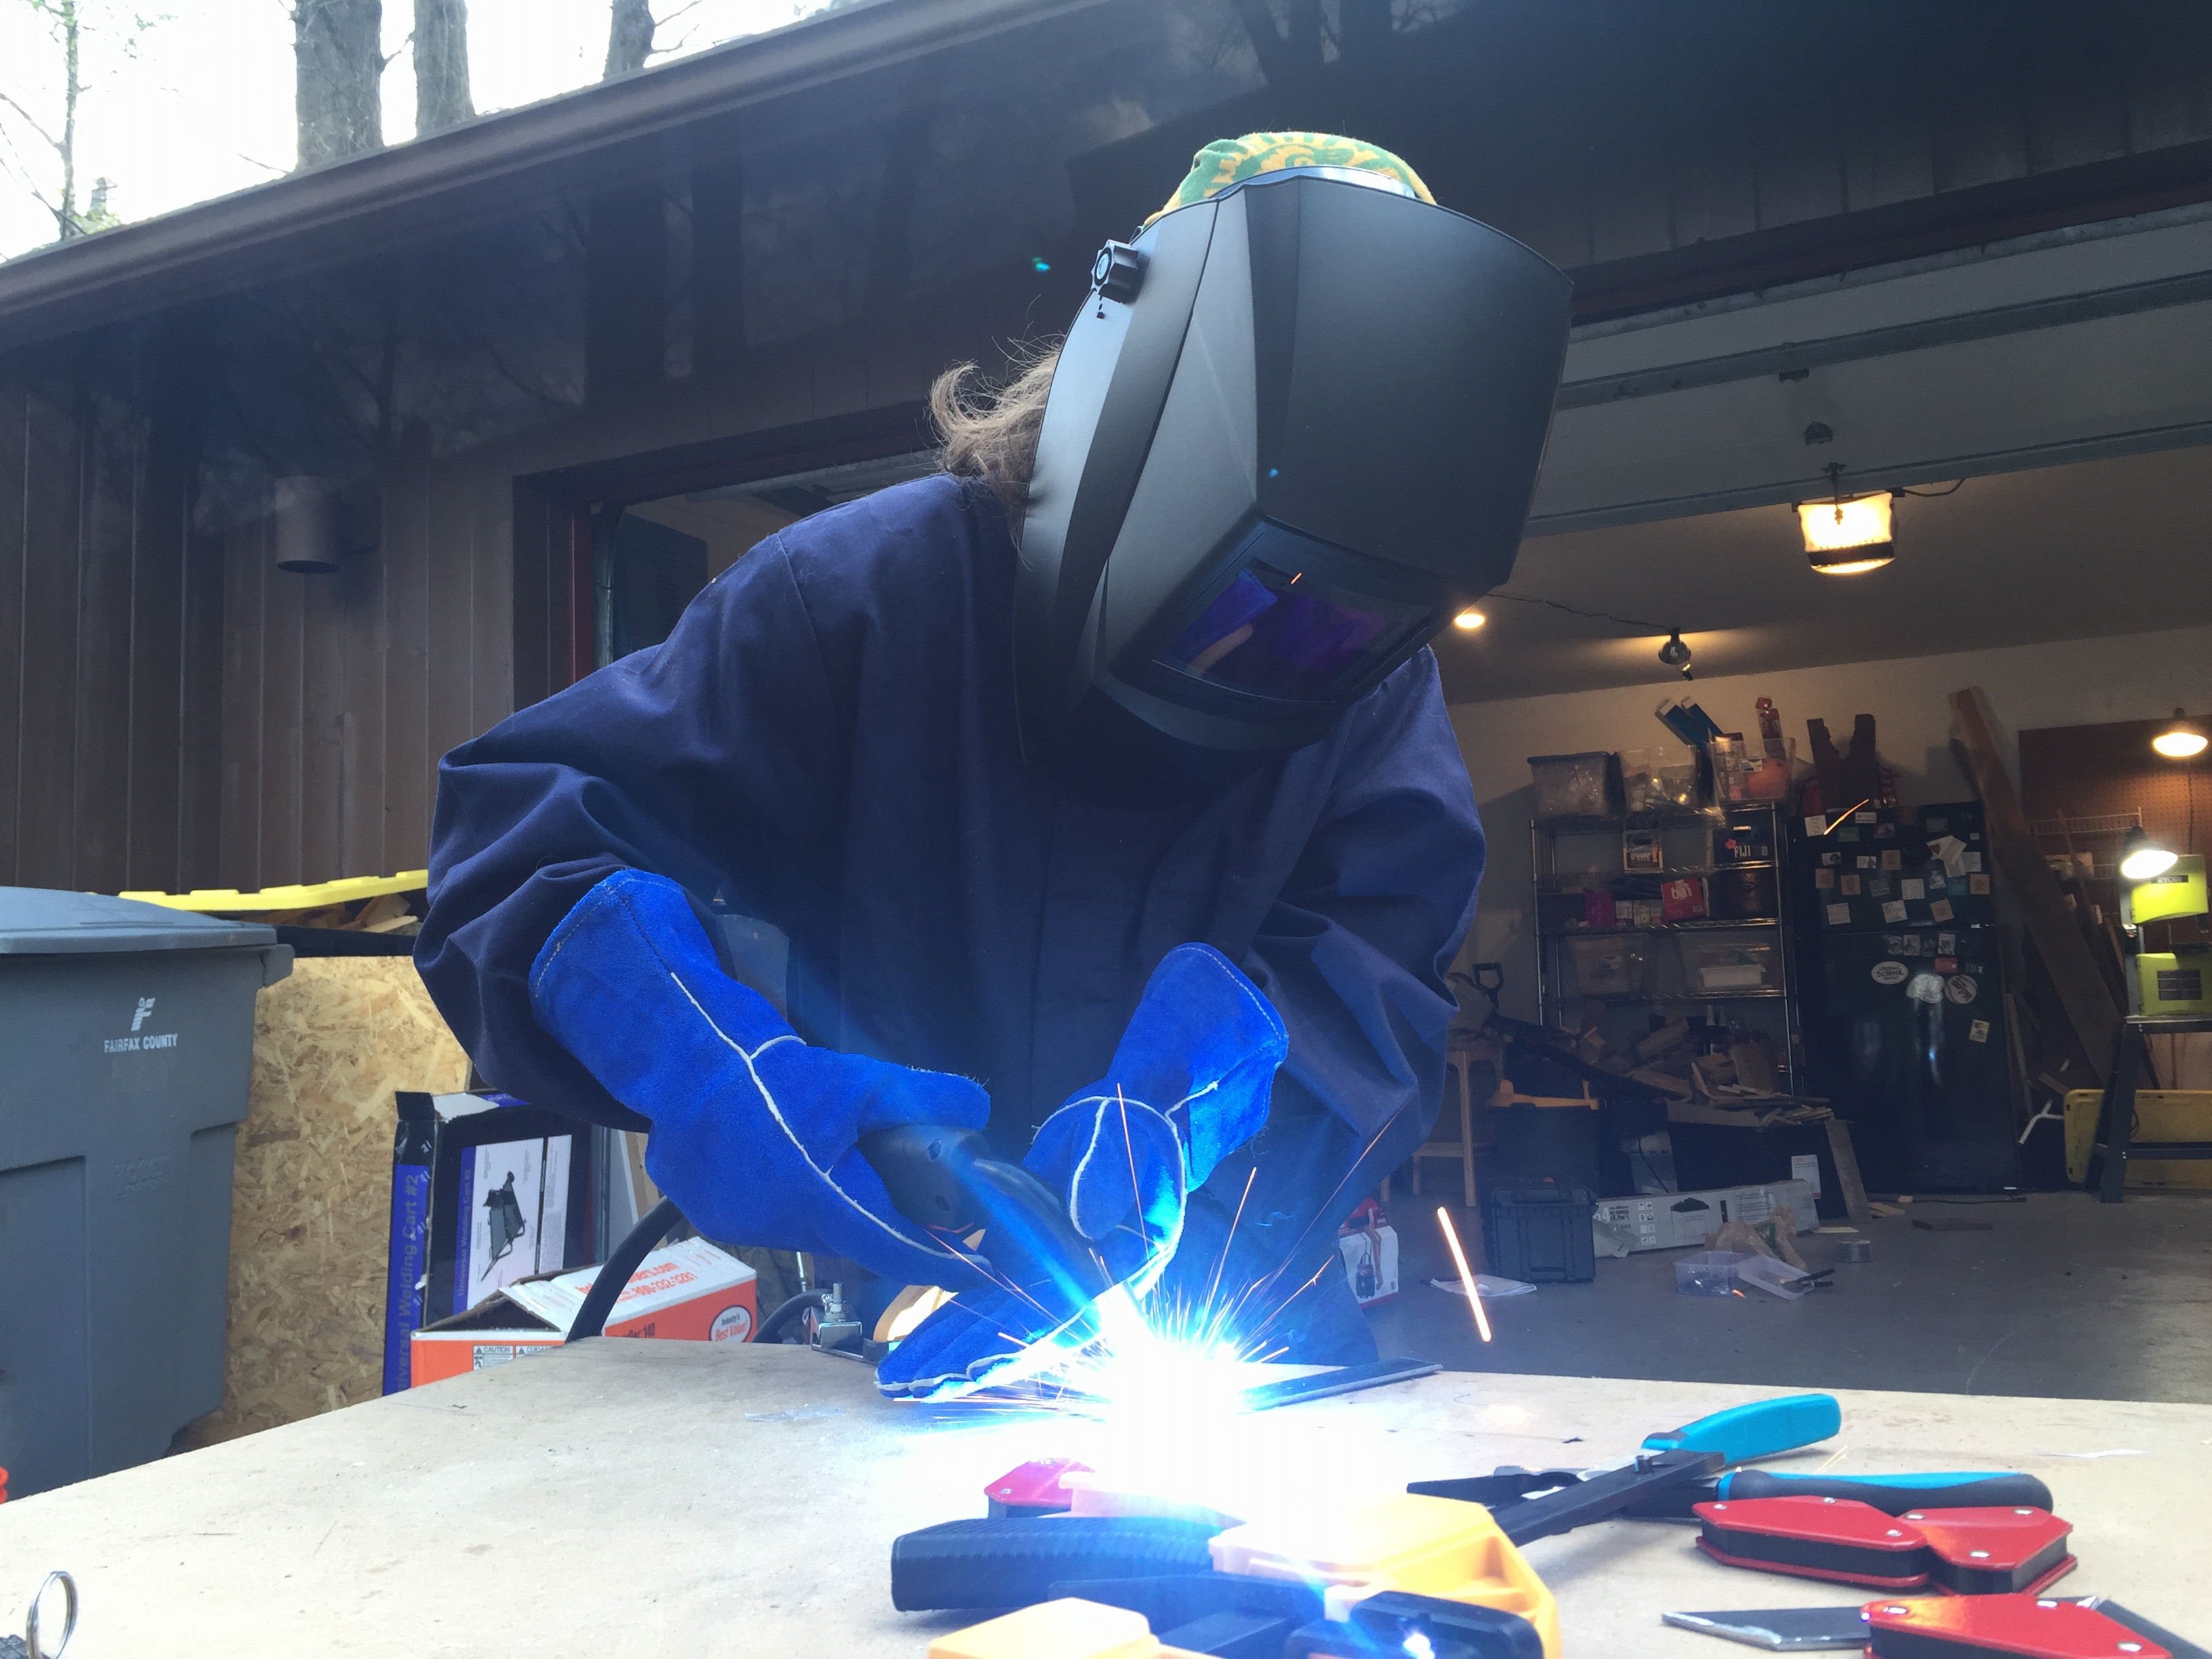 METAL WELDING AND COURAGE